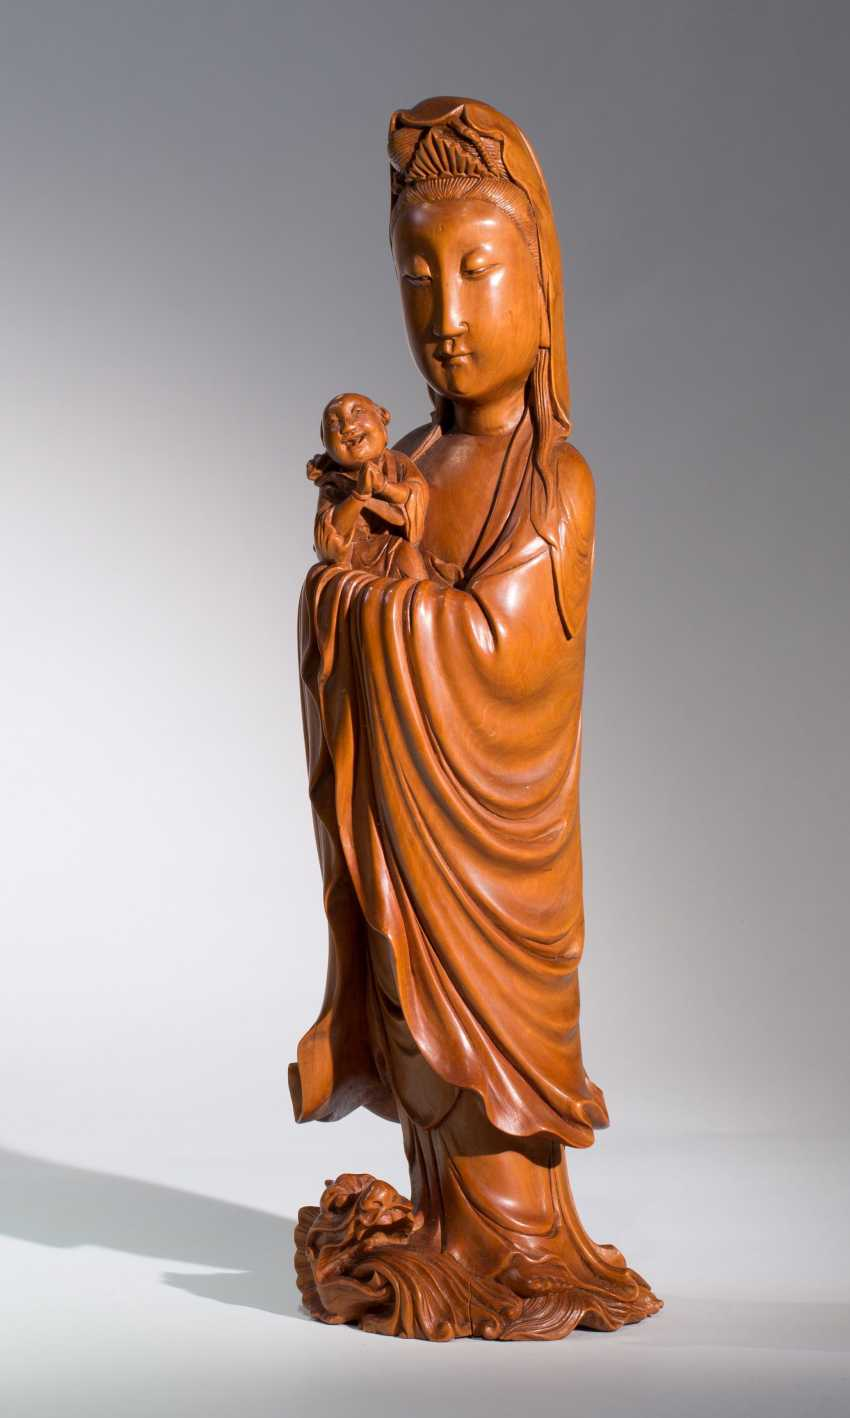 THE CHILDREN-BRINGING GODDESS GUANYIN